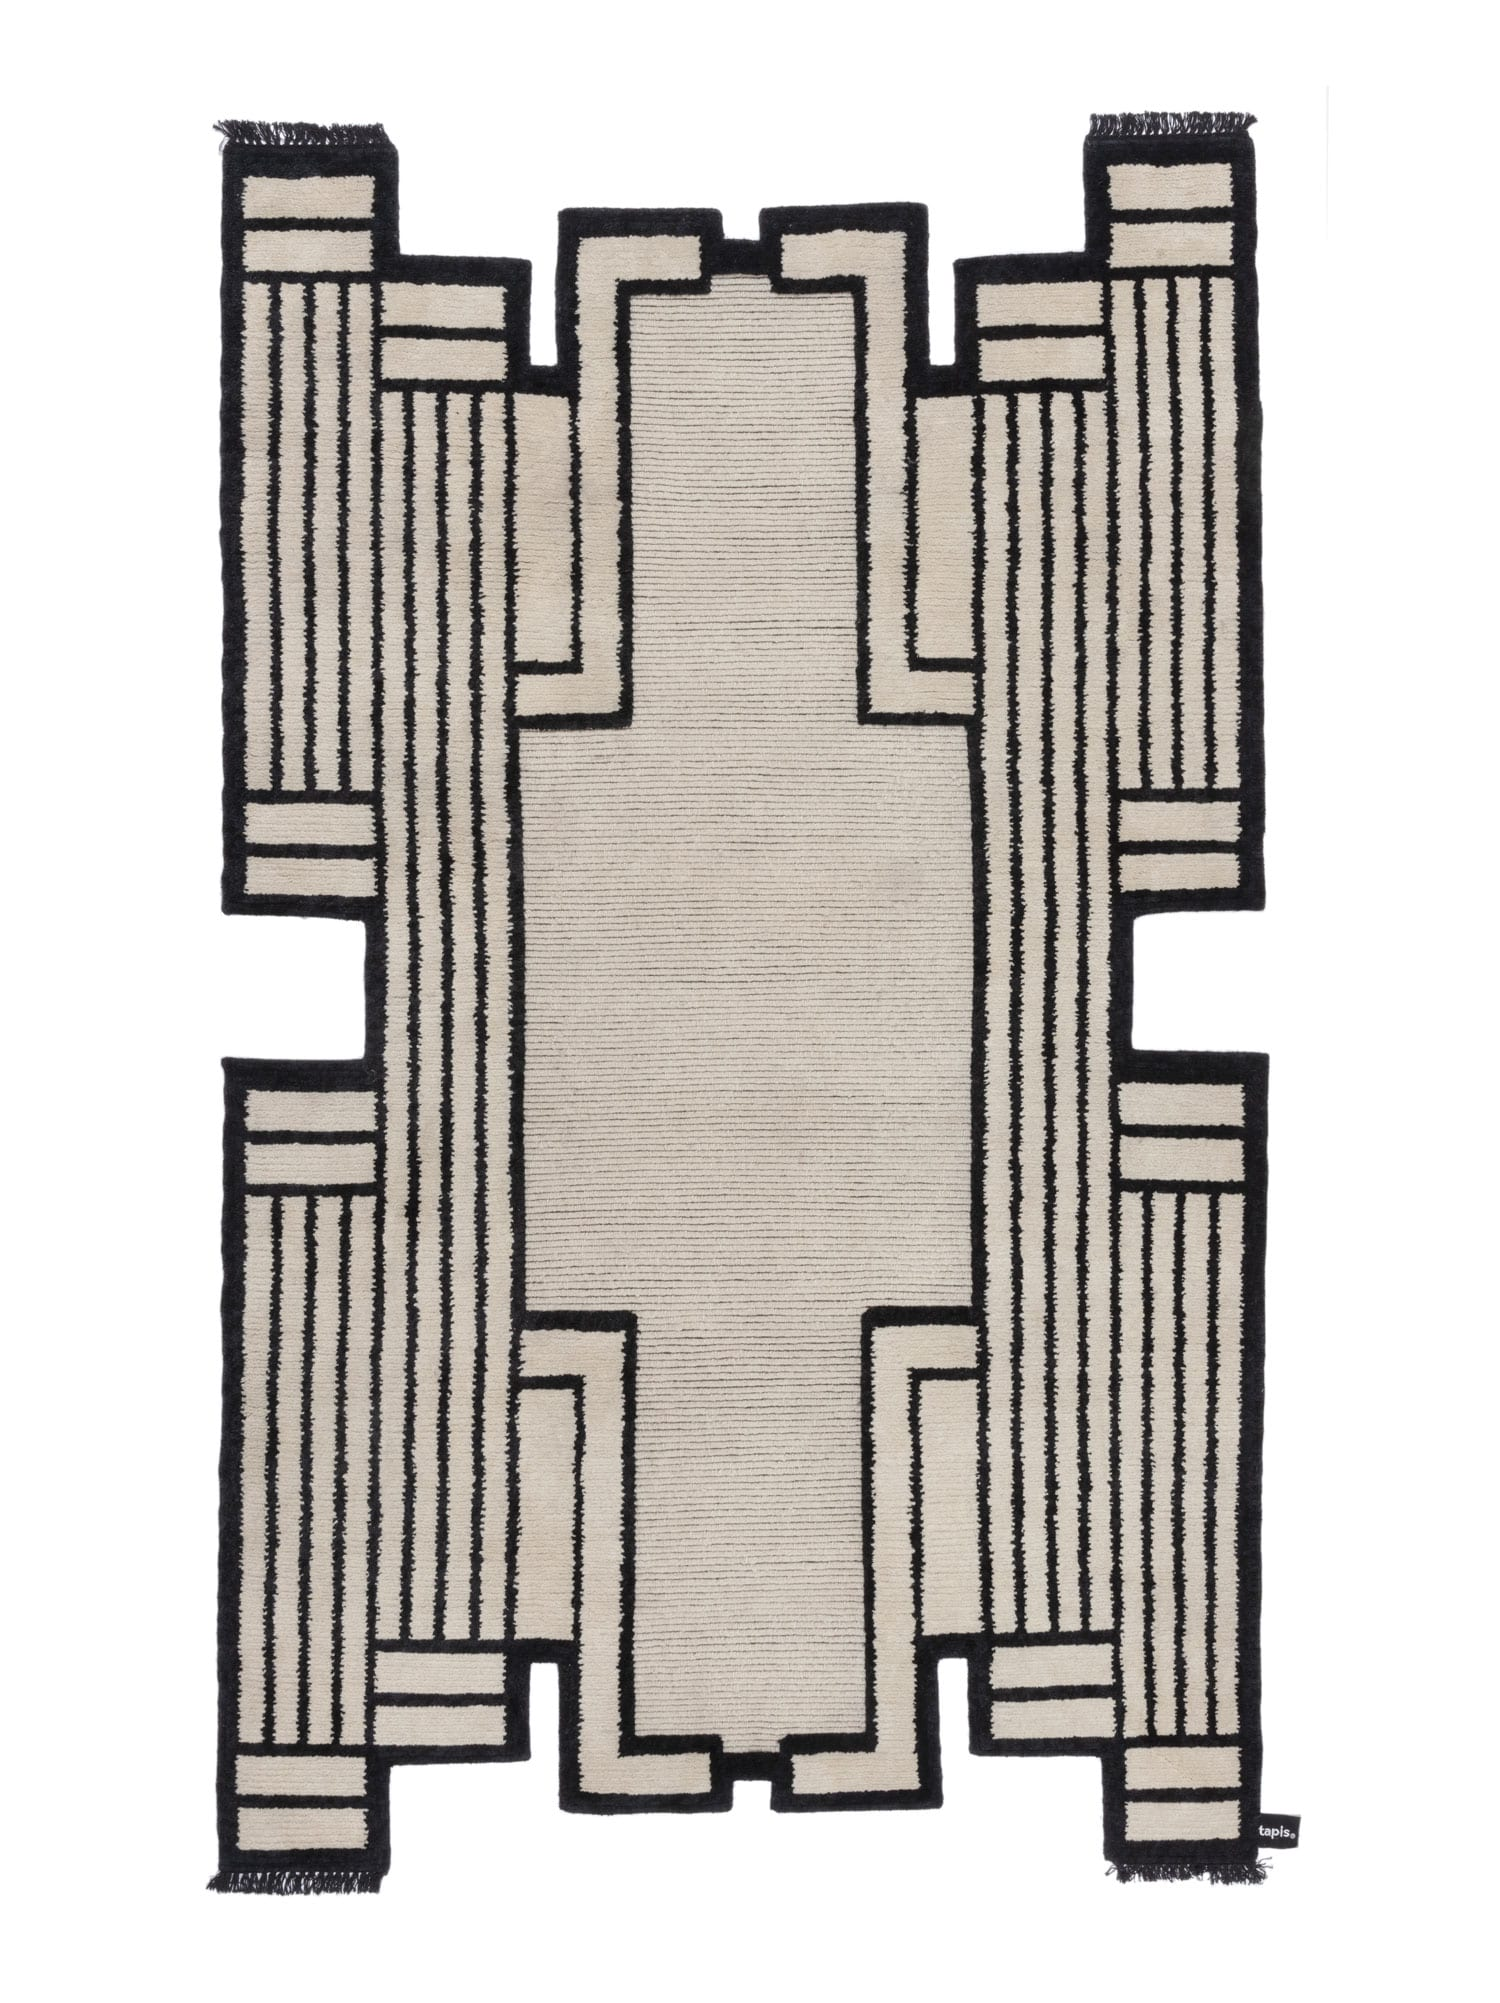 Asmara by Federico Pepe for cc-tapis at Imm Cologne 2019   Yellowtrace